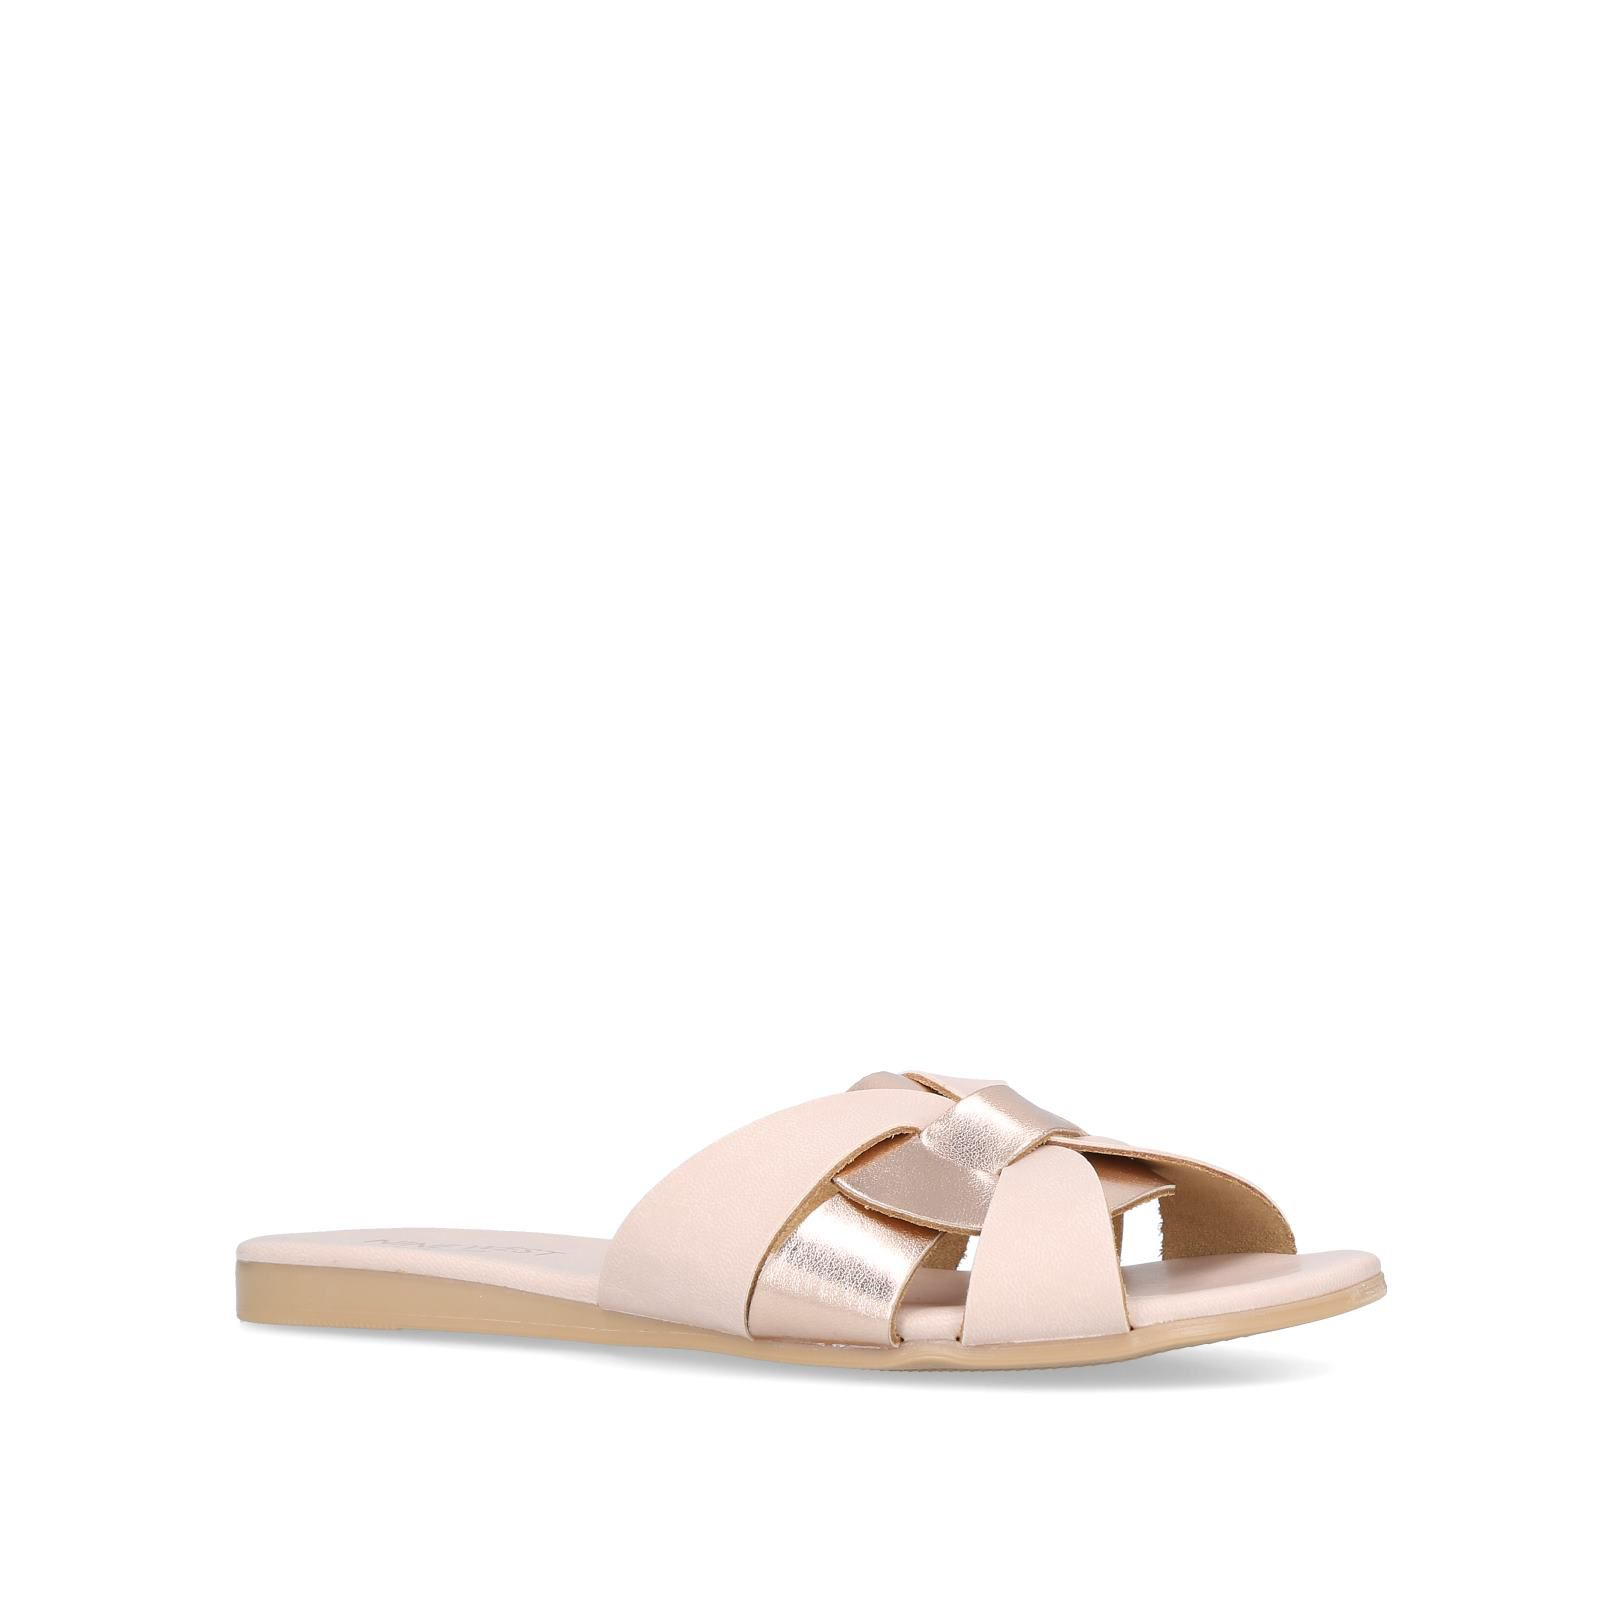 Nine West Candy Sandals, Nude